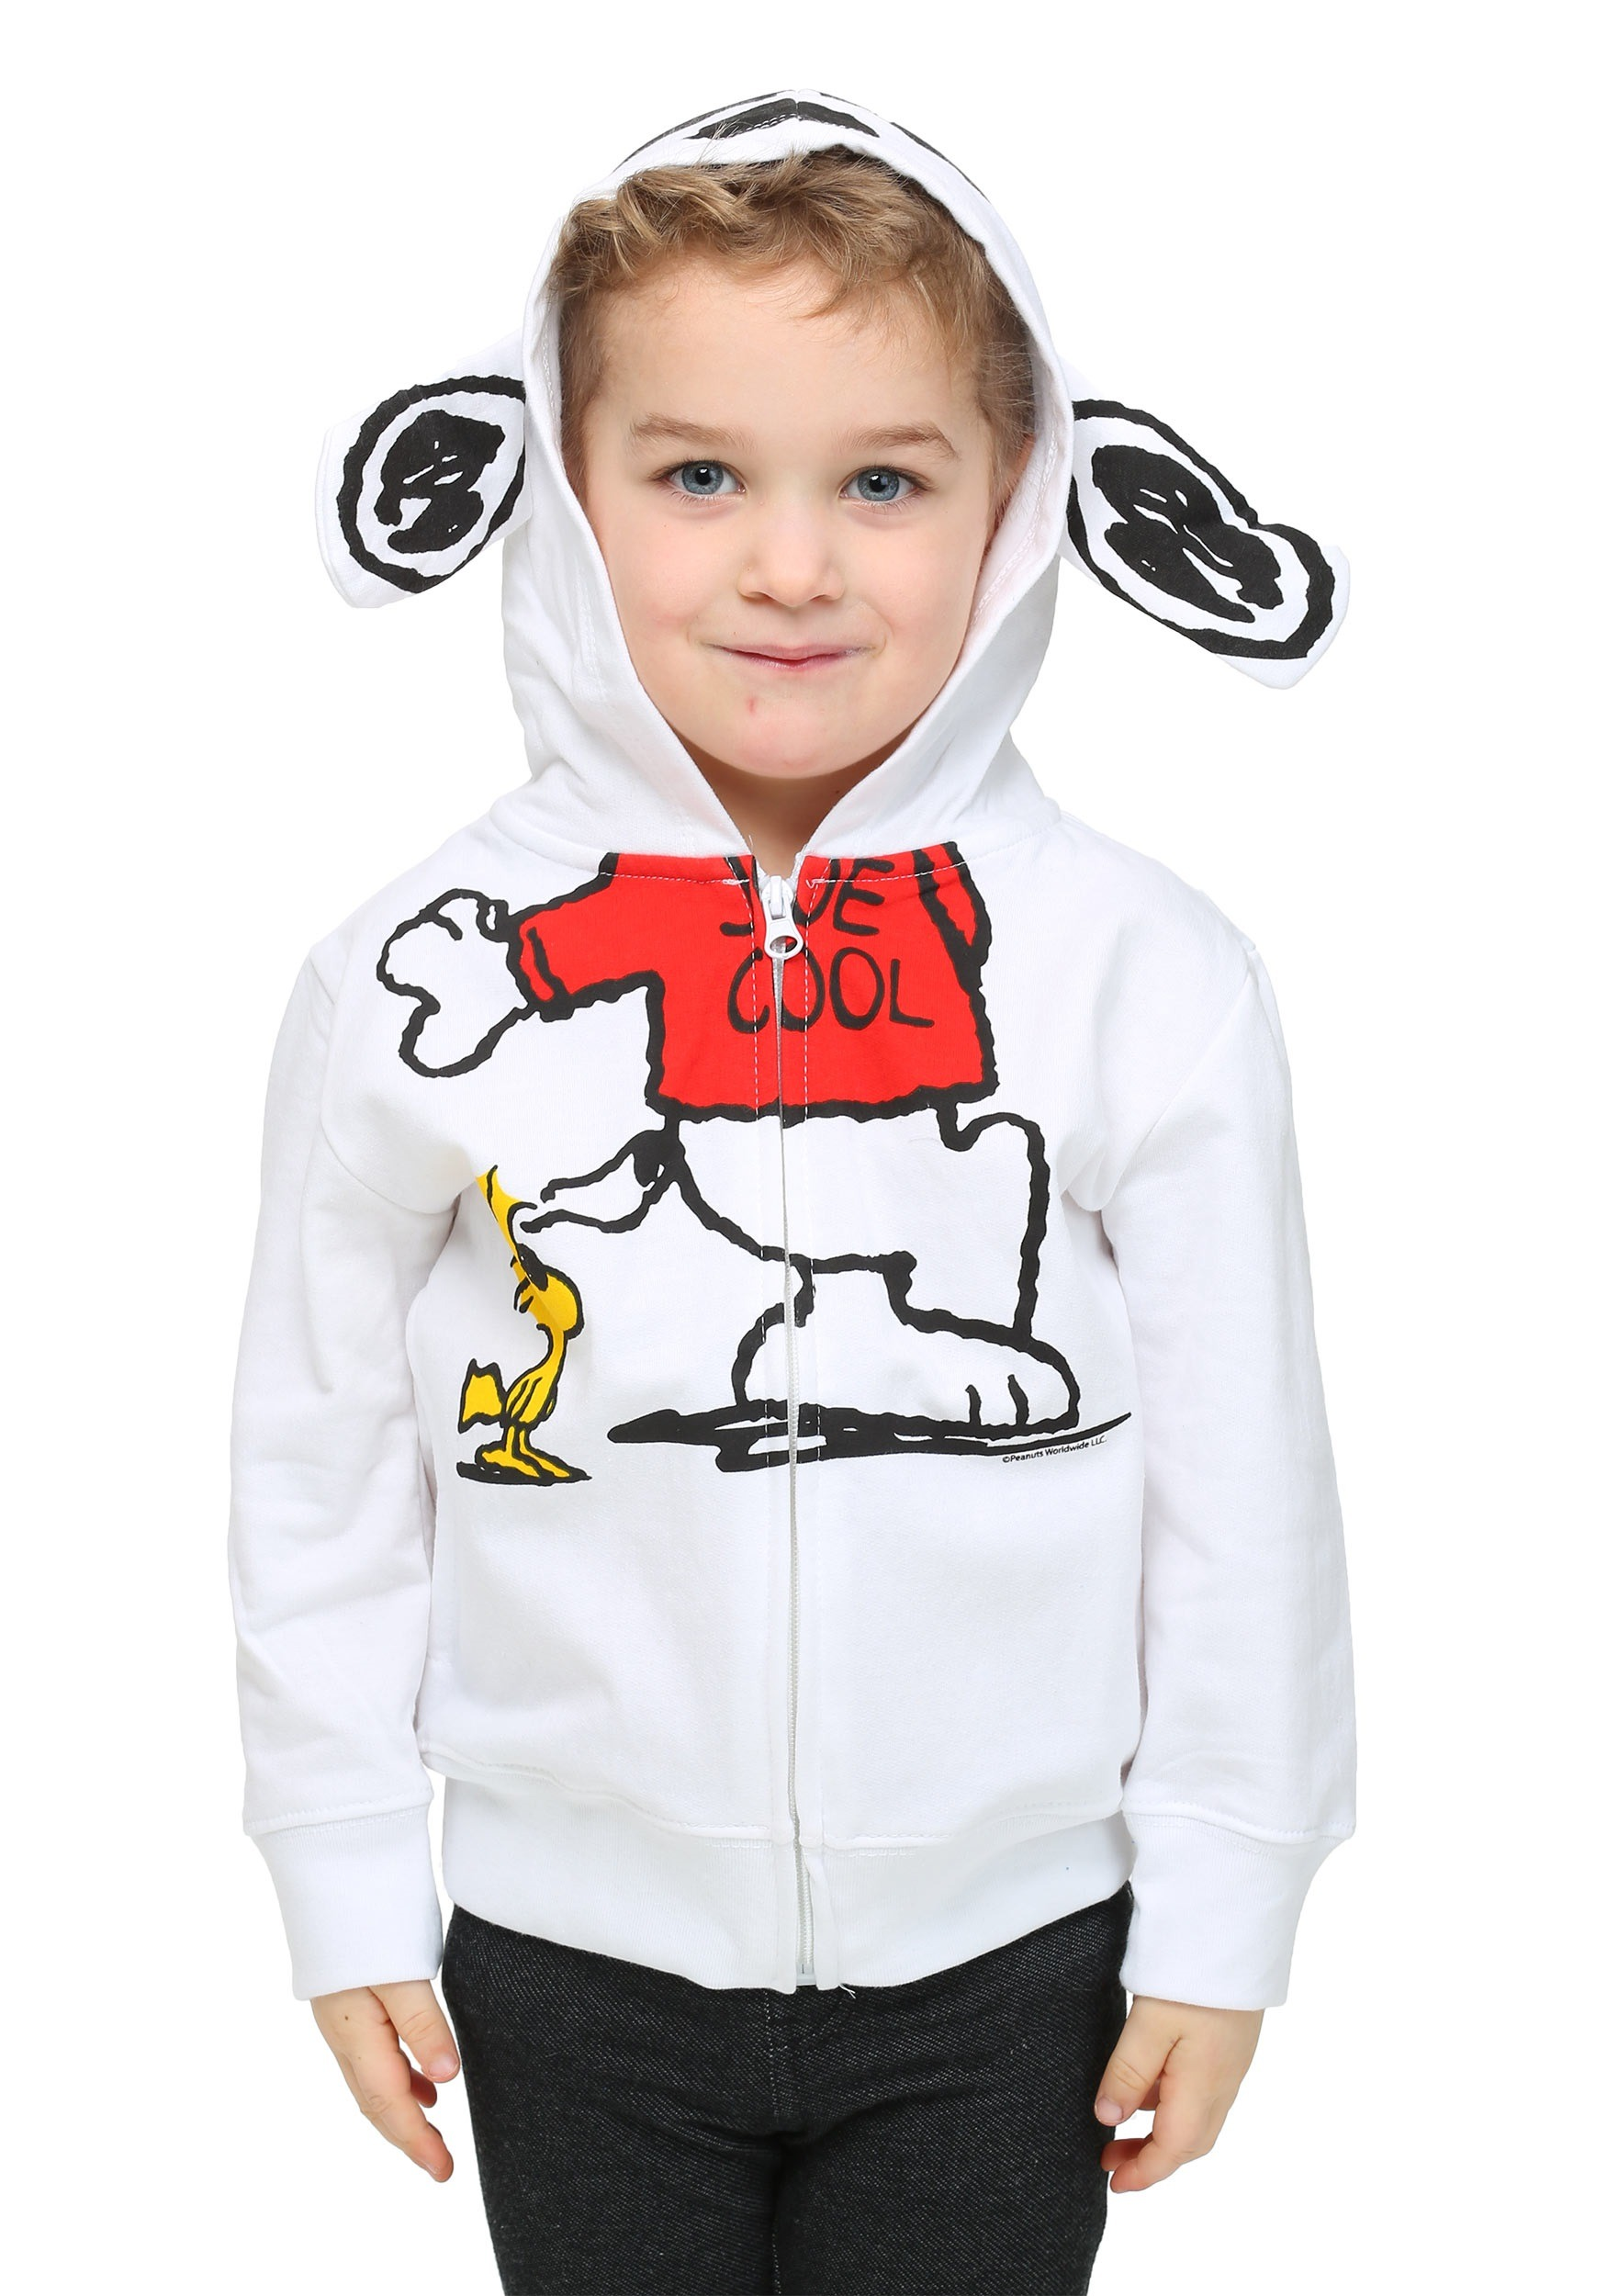 f5d0a97e8 Peanuts Joe Cool Toddler Boys Costume Zip Up Hoodie Sc 1 St Halloween  Costumes. image number 1 of snoopy ...